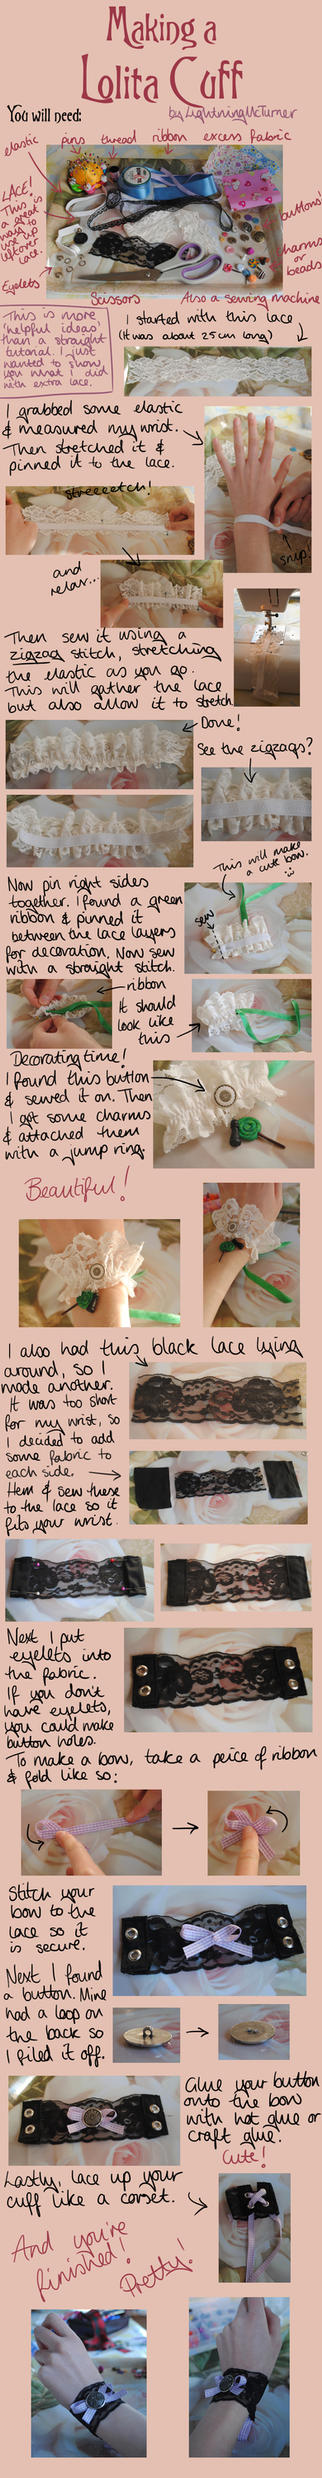 Lolita Cuff Tutorial by LightningMcTurner